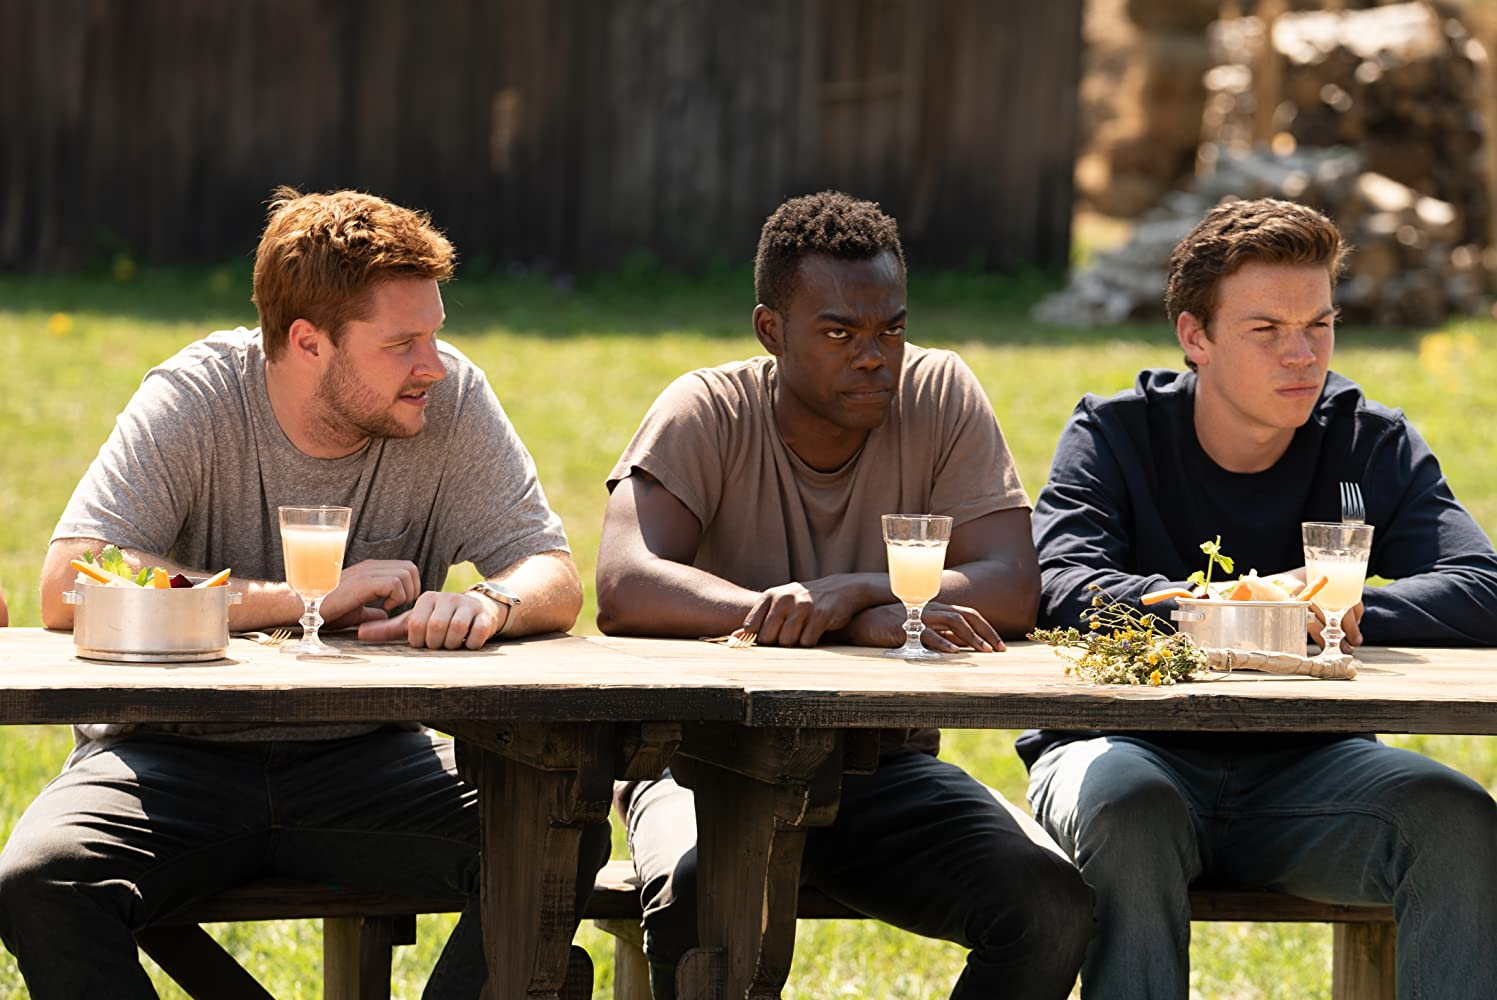 Will Poulter, William Jackson Harper, and Jack Reynor in Midsommar (2019)